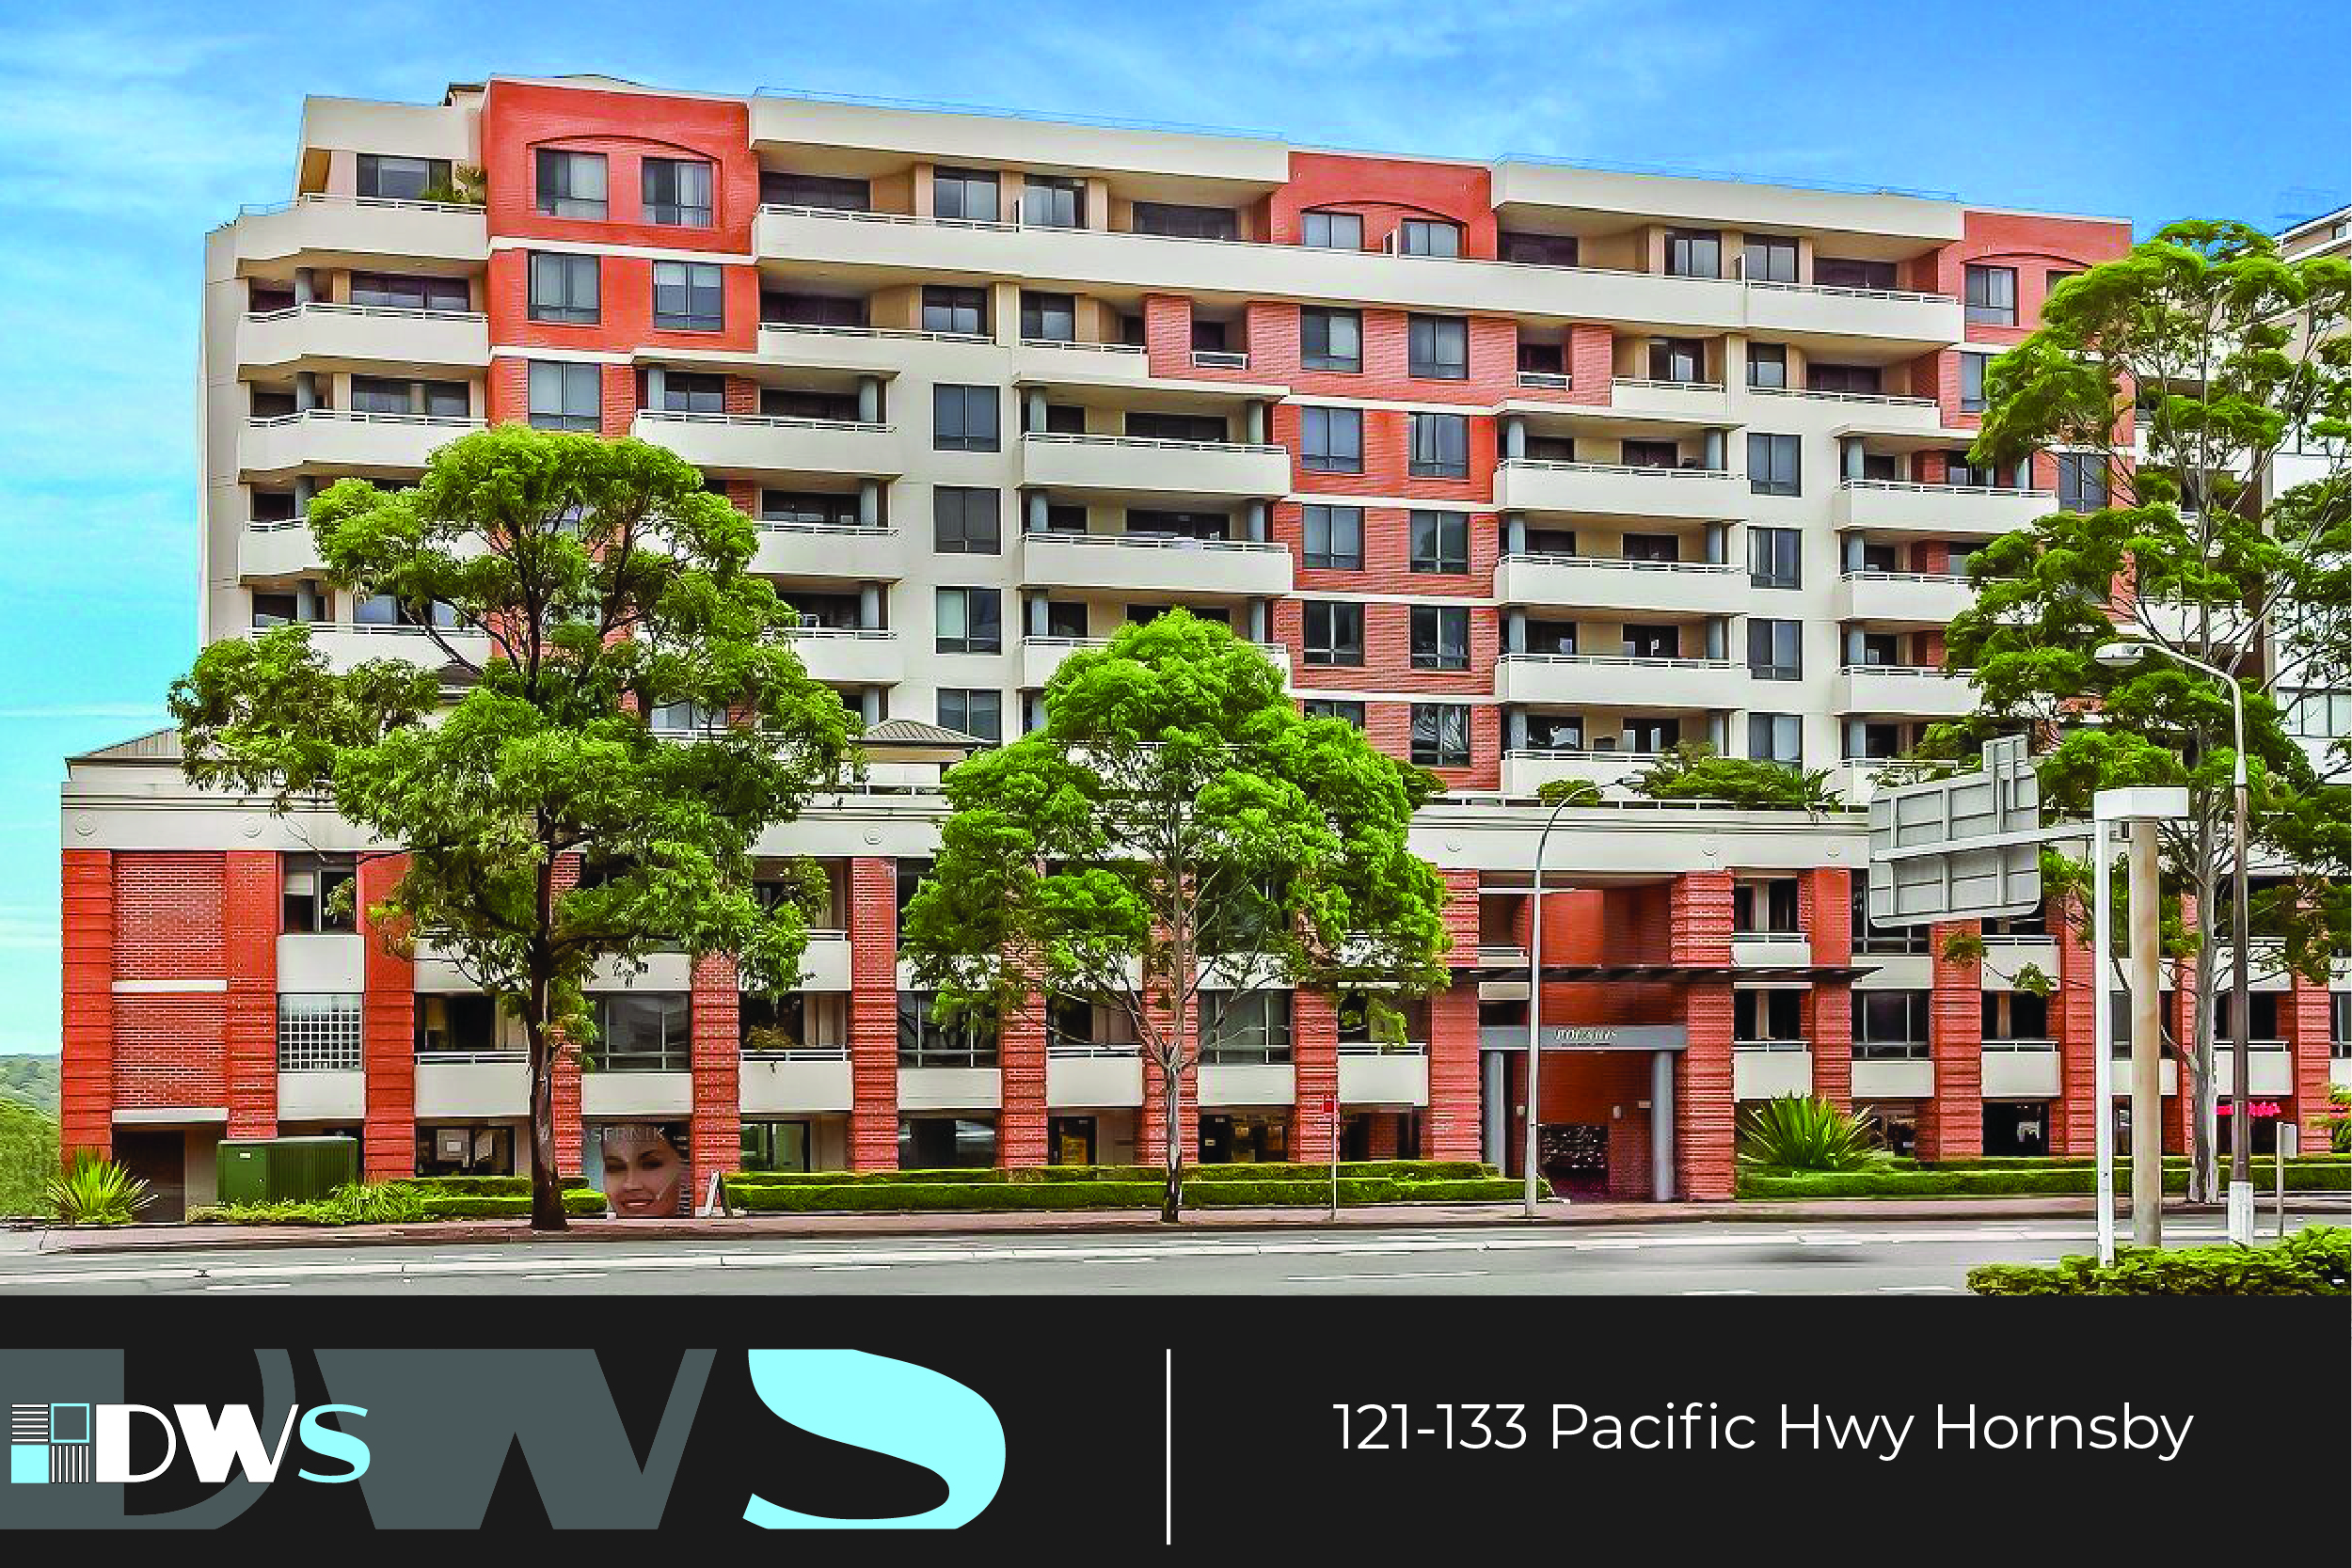 121-133 Pacific Hwy Hornsby.jpg